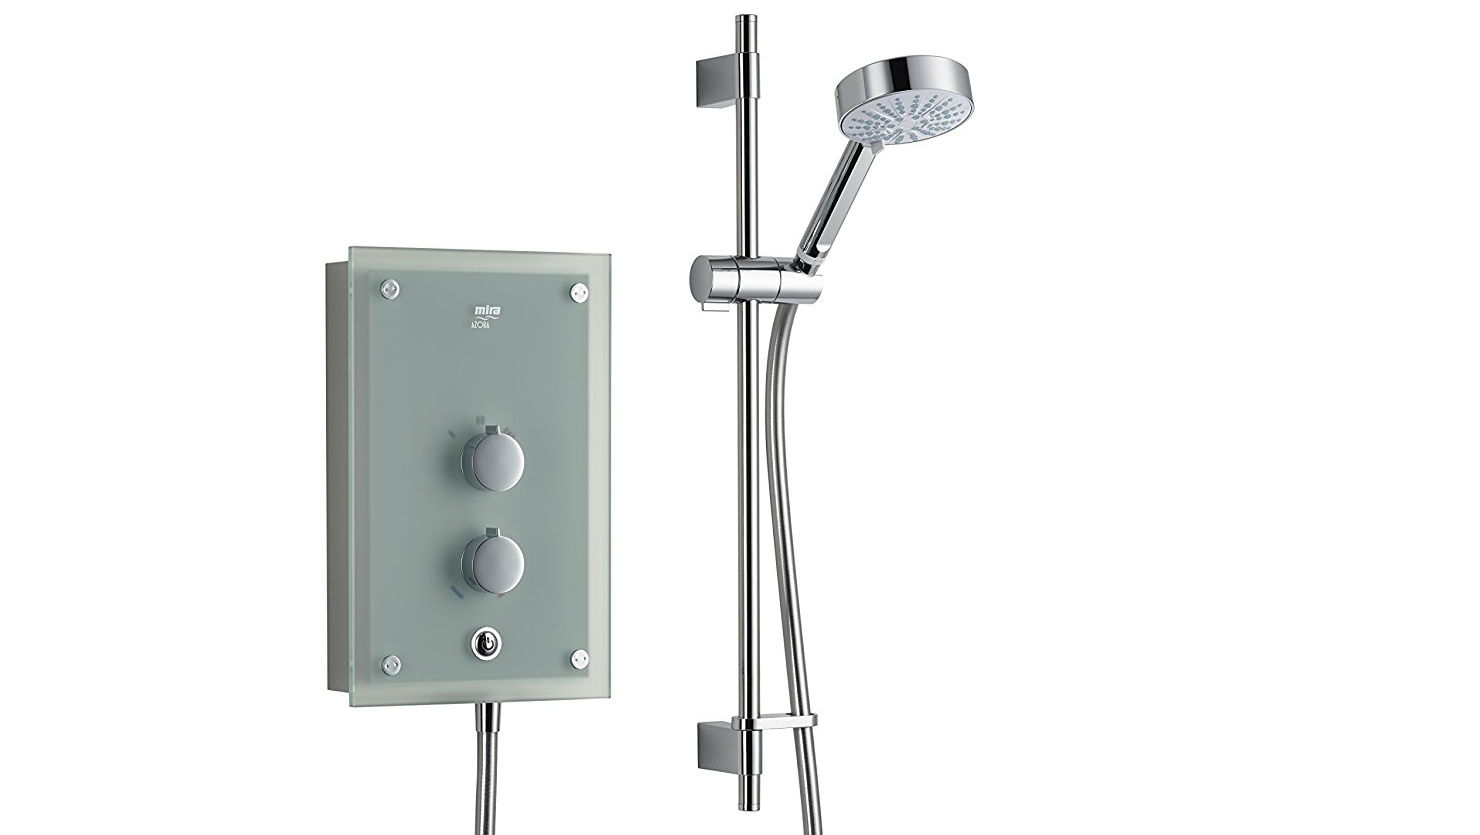 Shower for giving heated: types, features, choice 97